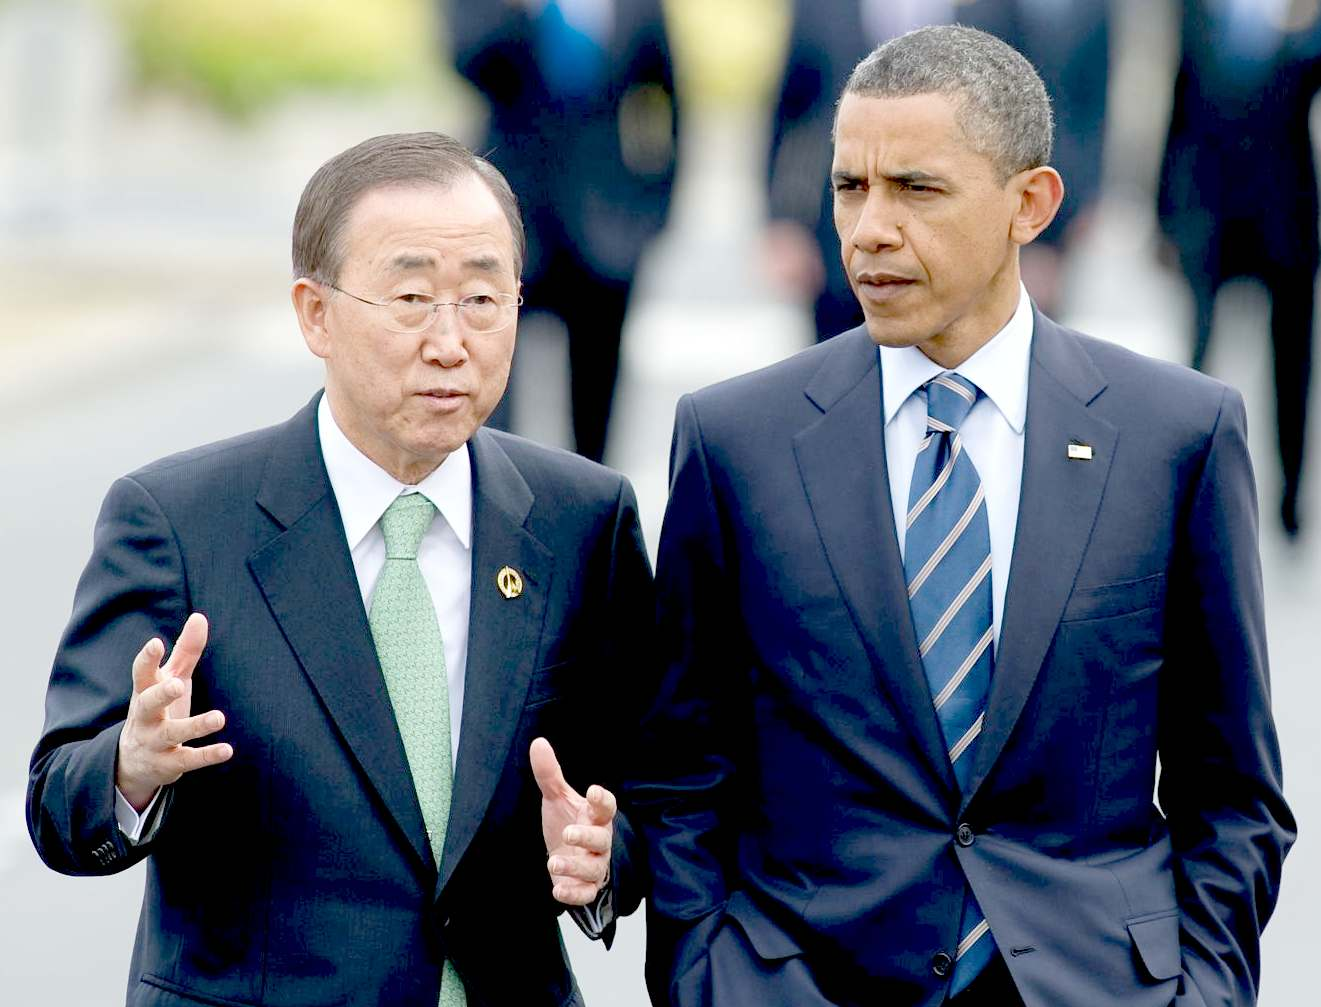 Ban Ki-moon and President Obama